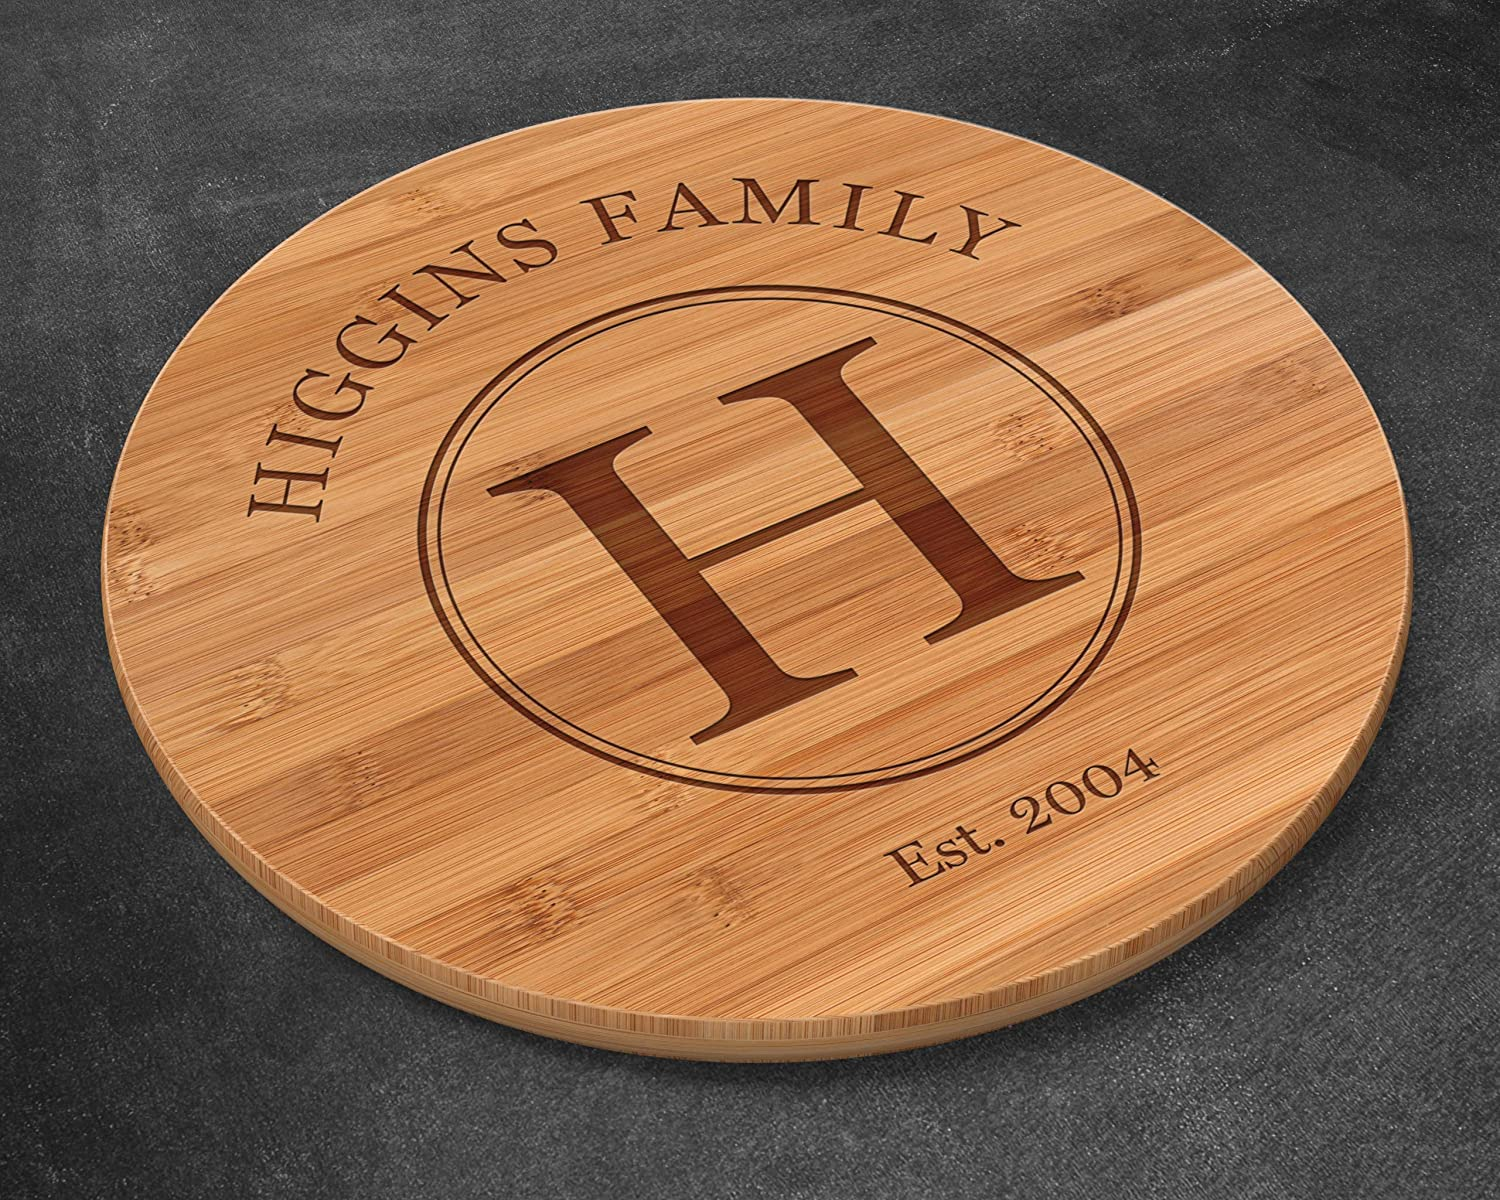 Wife Gift Wedding Gift Bamboo Cutting Board Turntable Lazy Susan Turntable Lazy Susan Bamboo Anniversary Gift Engraved Lazy Susan Personalized Wedding Gift Personalised Lazy Susan